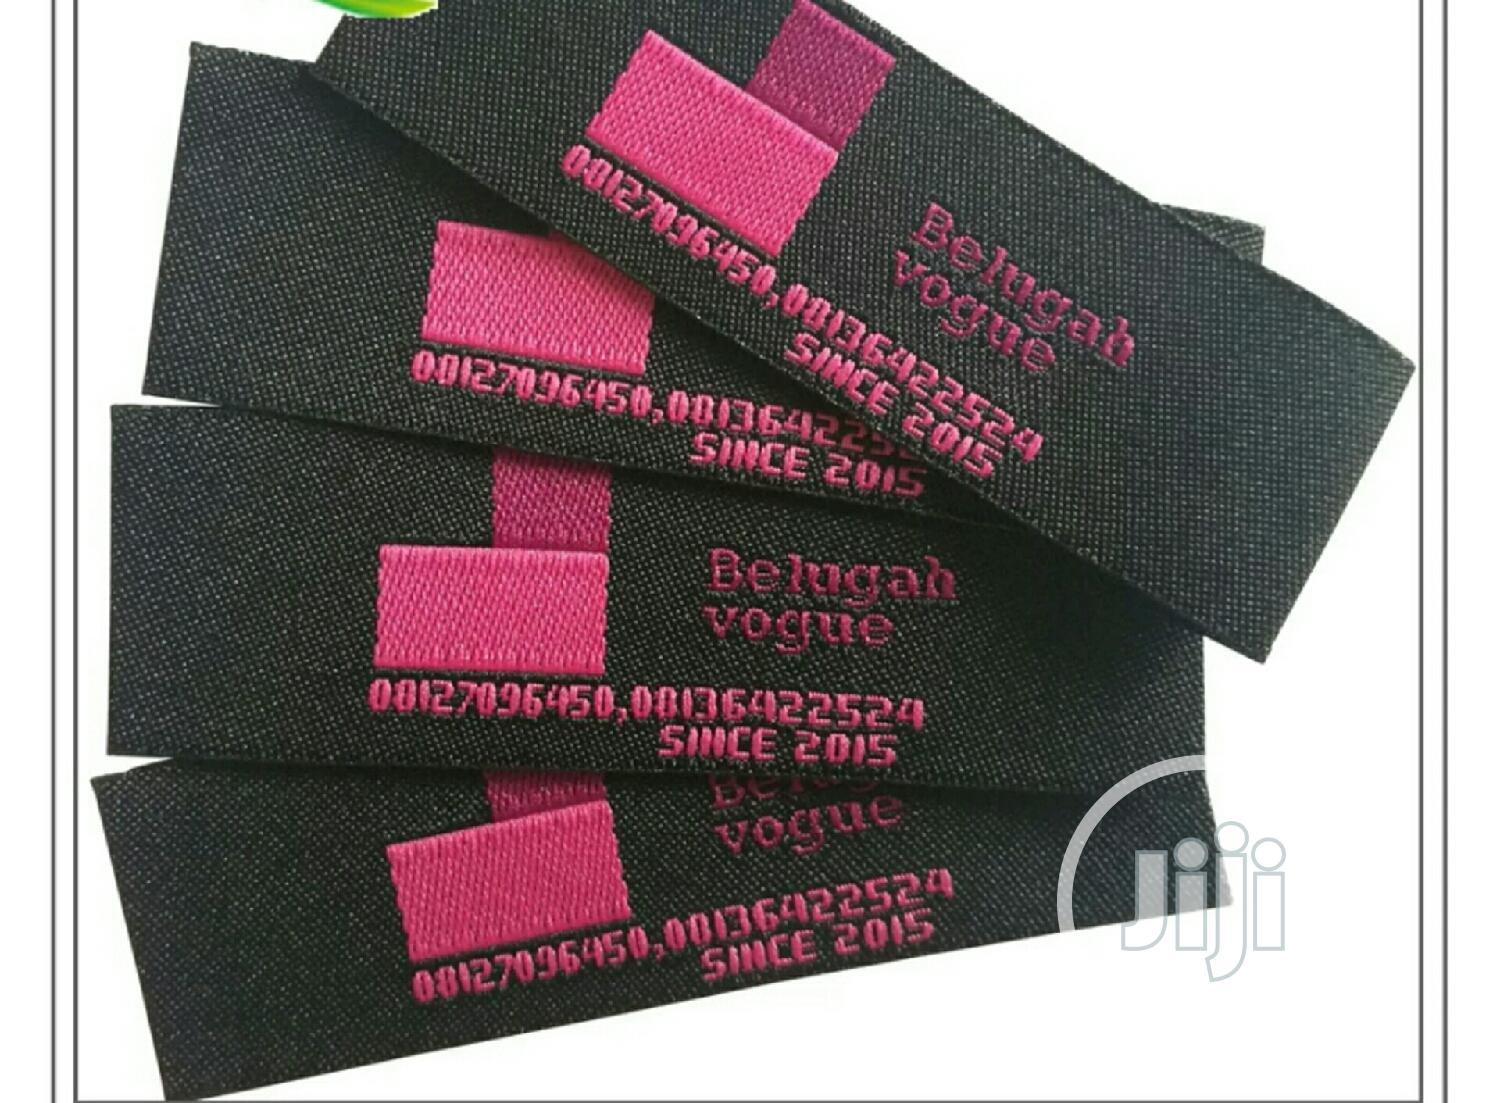 1000 Pcs of Customized Woven Labels for Bag,Clothing Shoes | Clothing Accessories for sale in Ogbomosho North, Oyo State, Nigeria